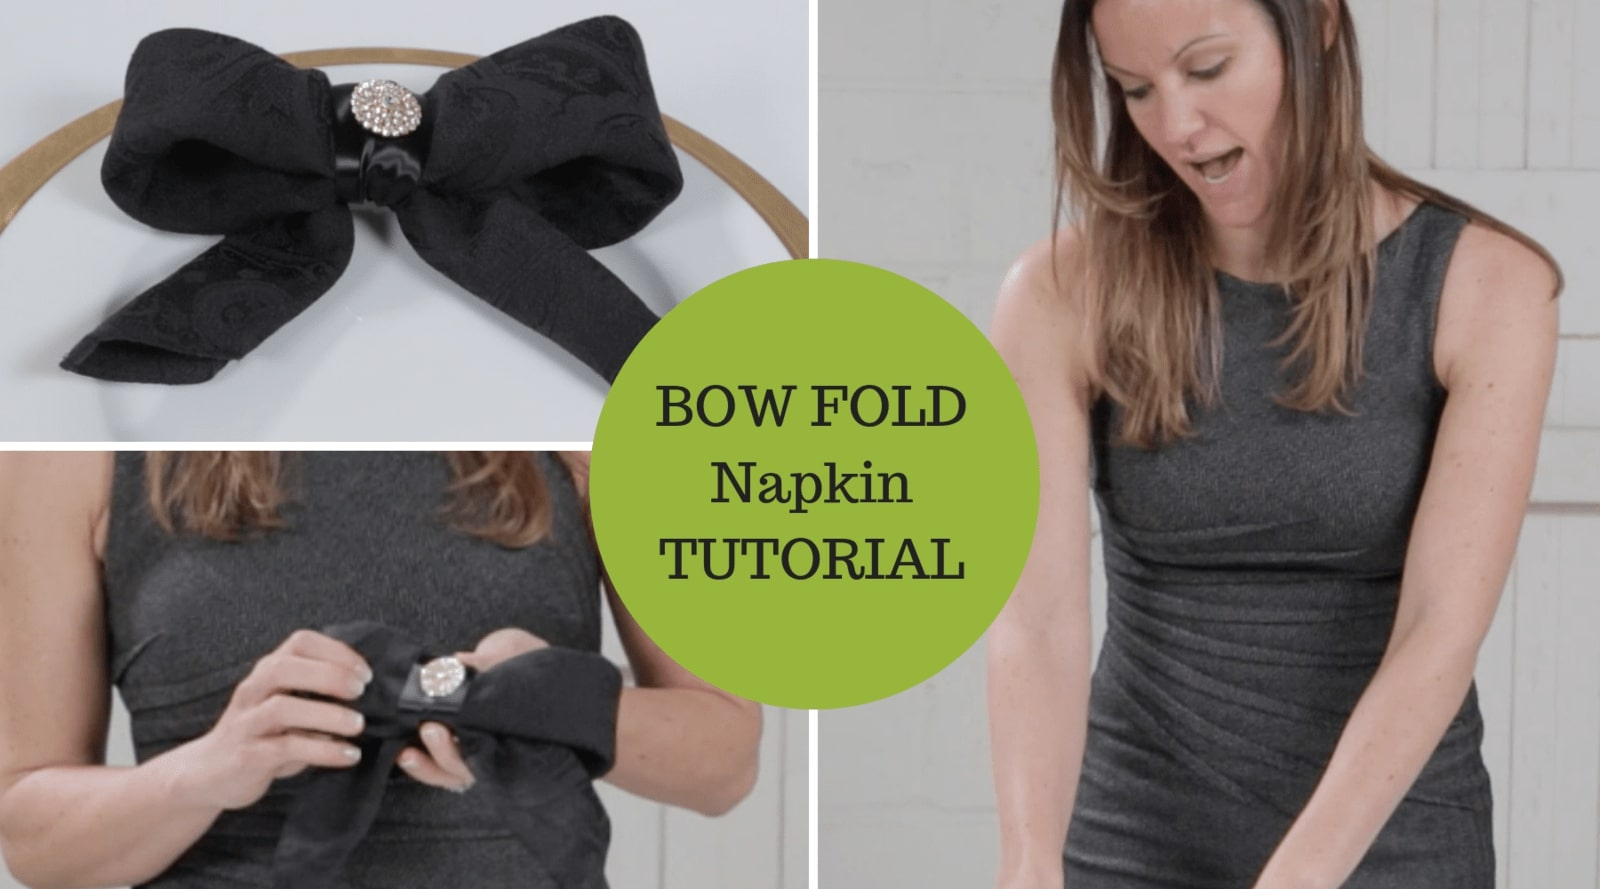 Napkin Folding Tutorial Bow Fold Technique With Added Bling Totally Dazzled